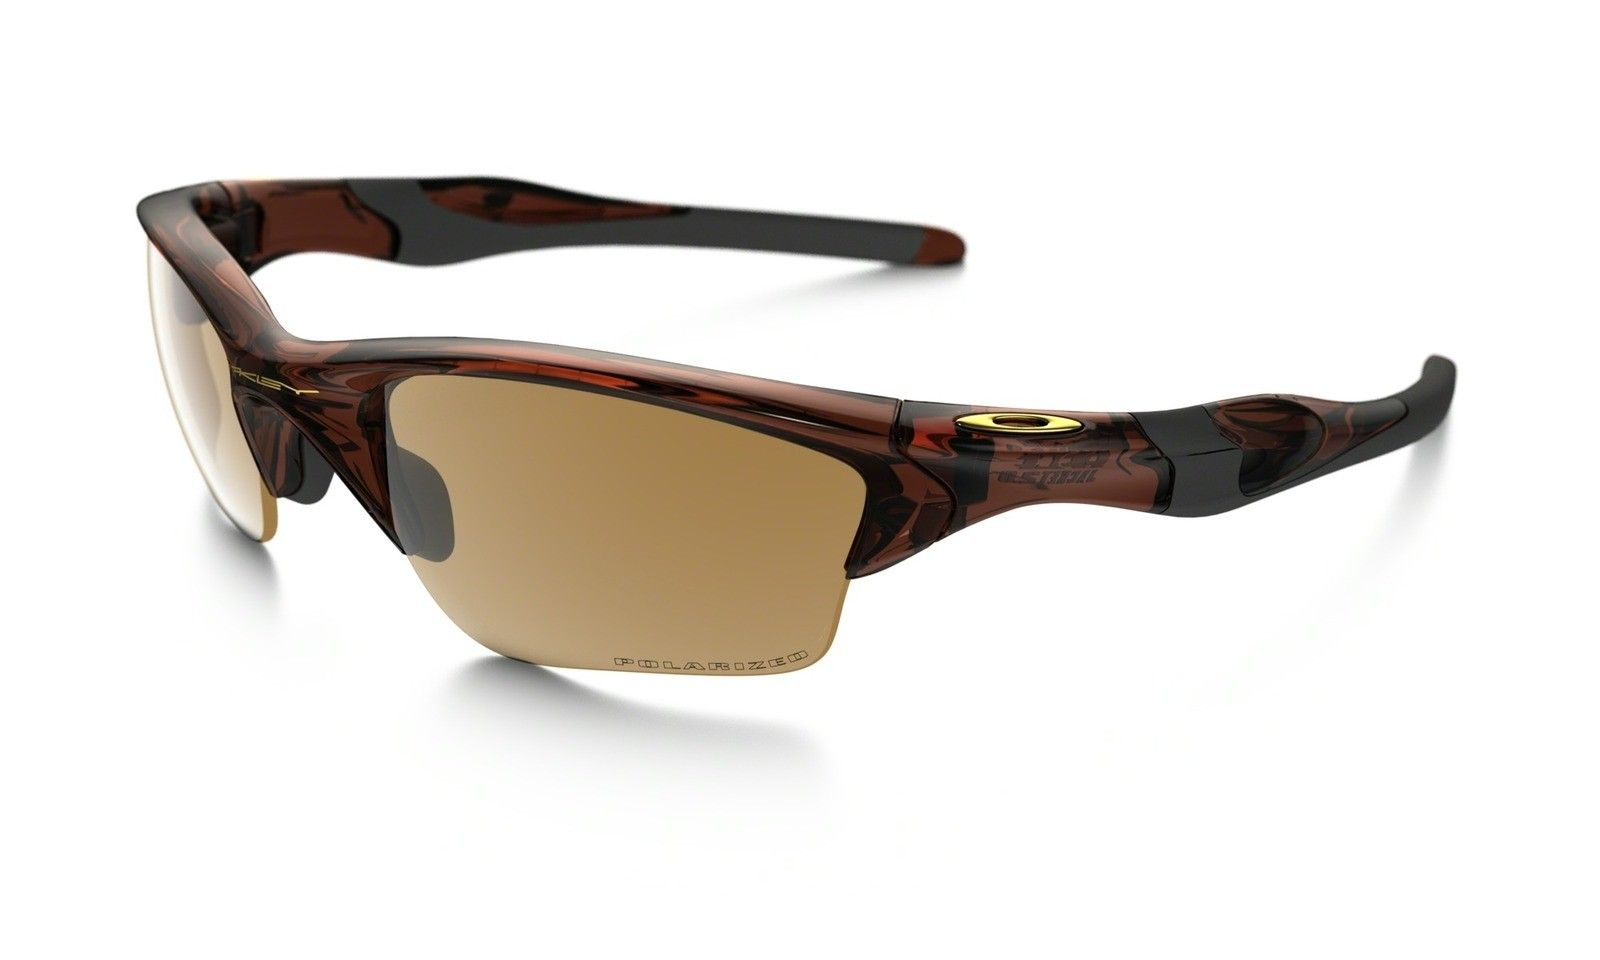 New member, new Oakley's! - main_OO9154-08_half-jacket-2_polished-rootbeer-bronze-polarized_001_66802_png_heroxl.jpg